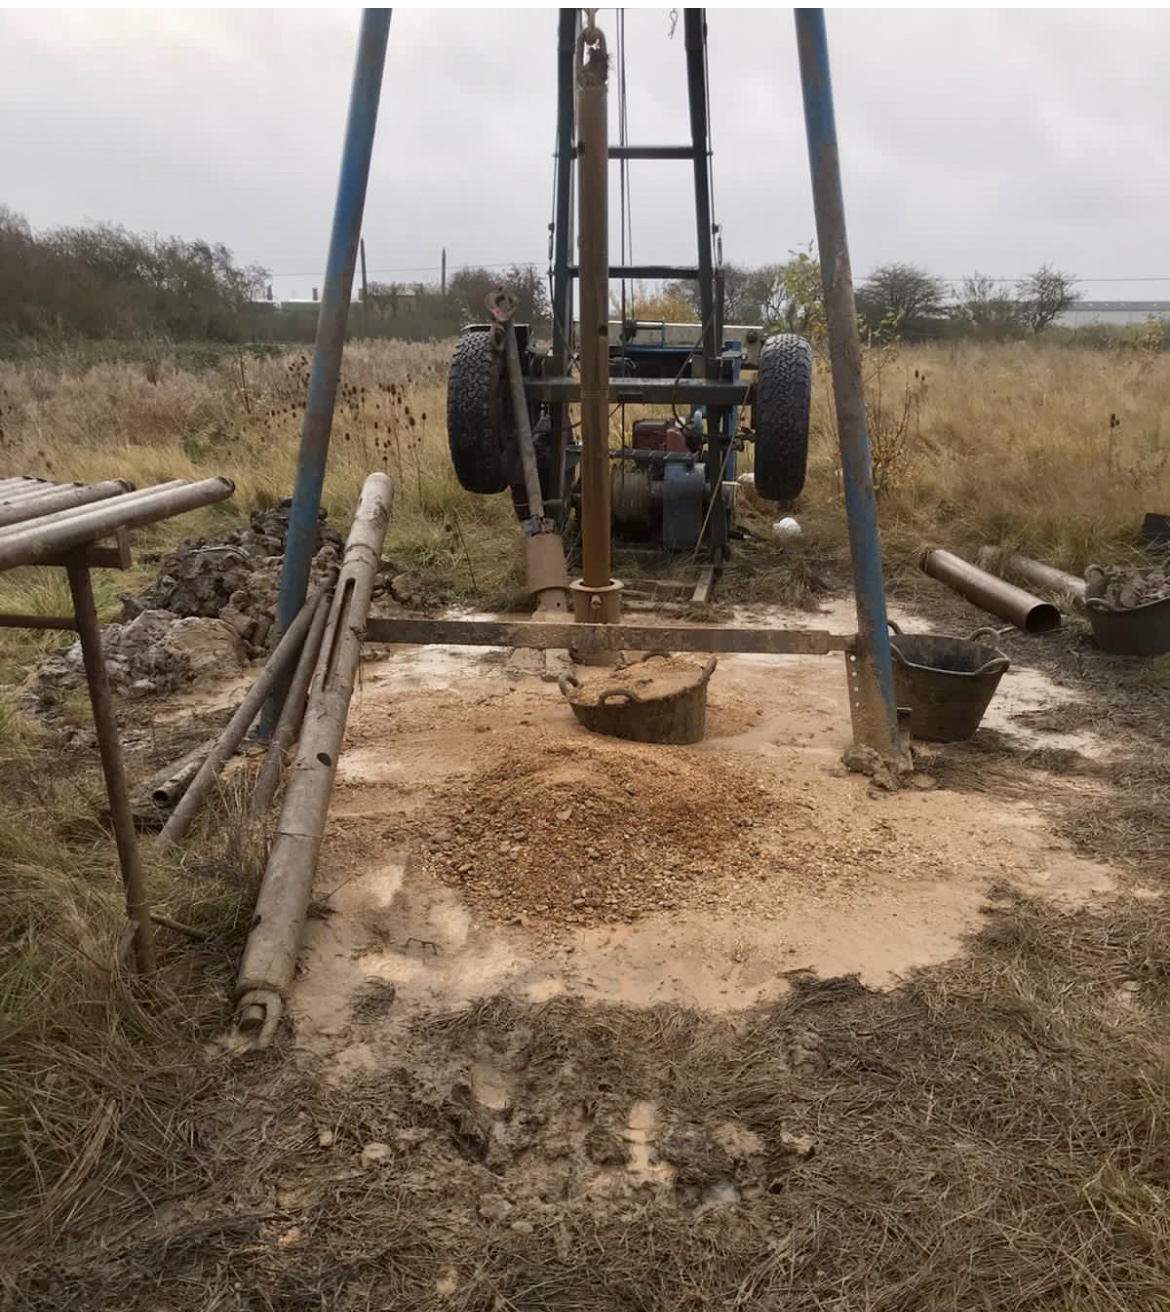 A borehole machine being used to drill for water.